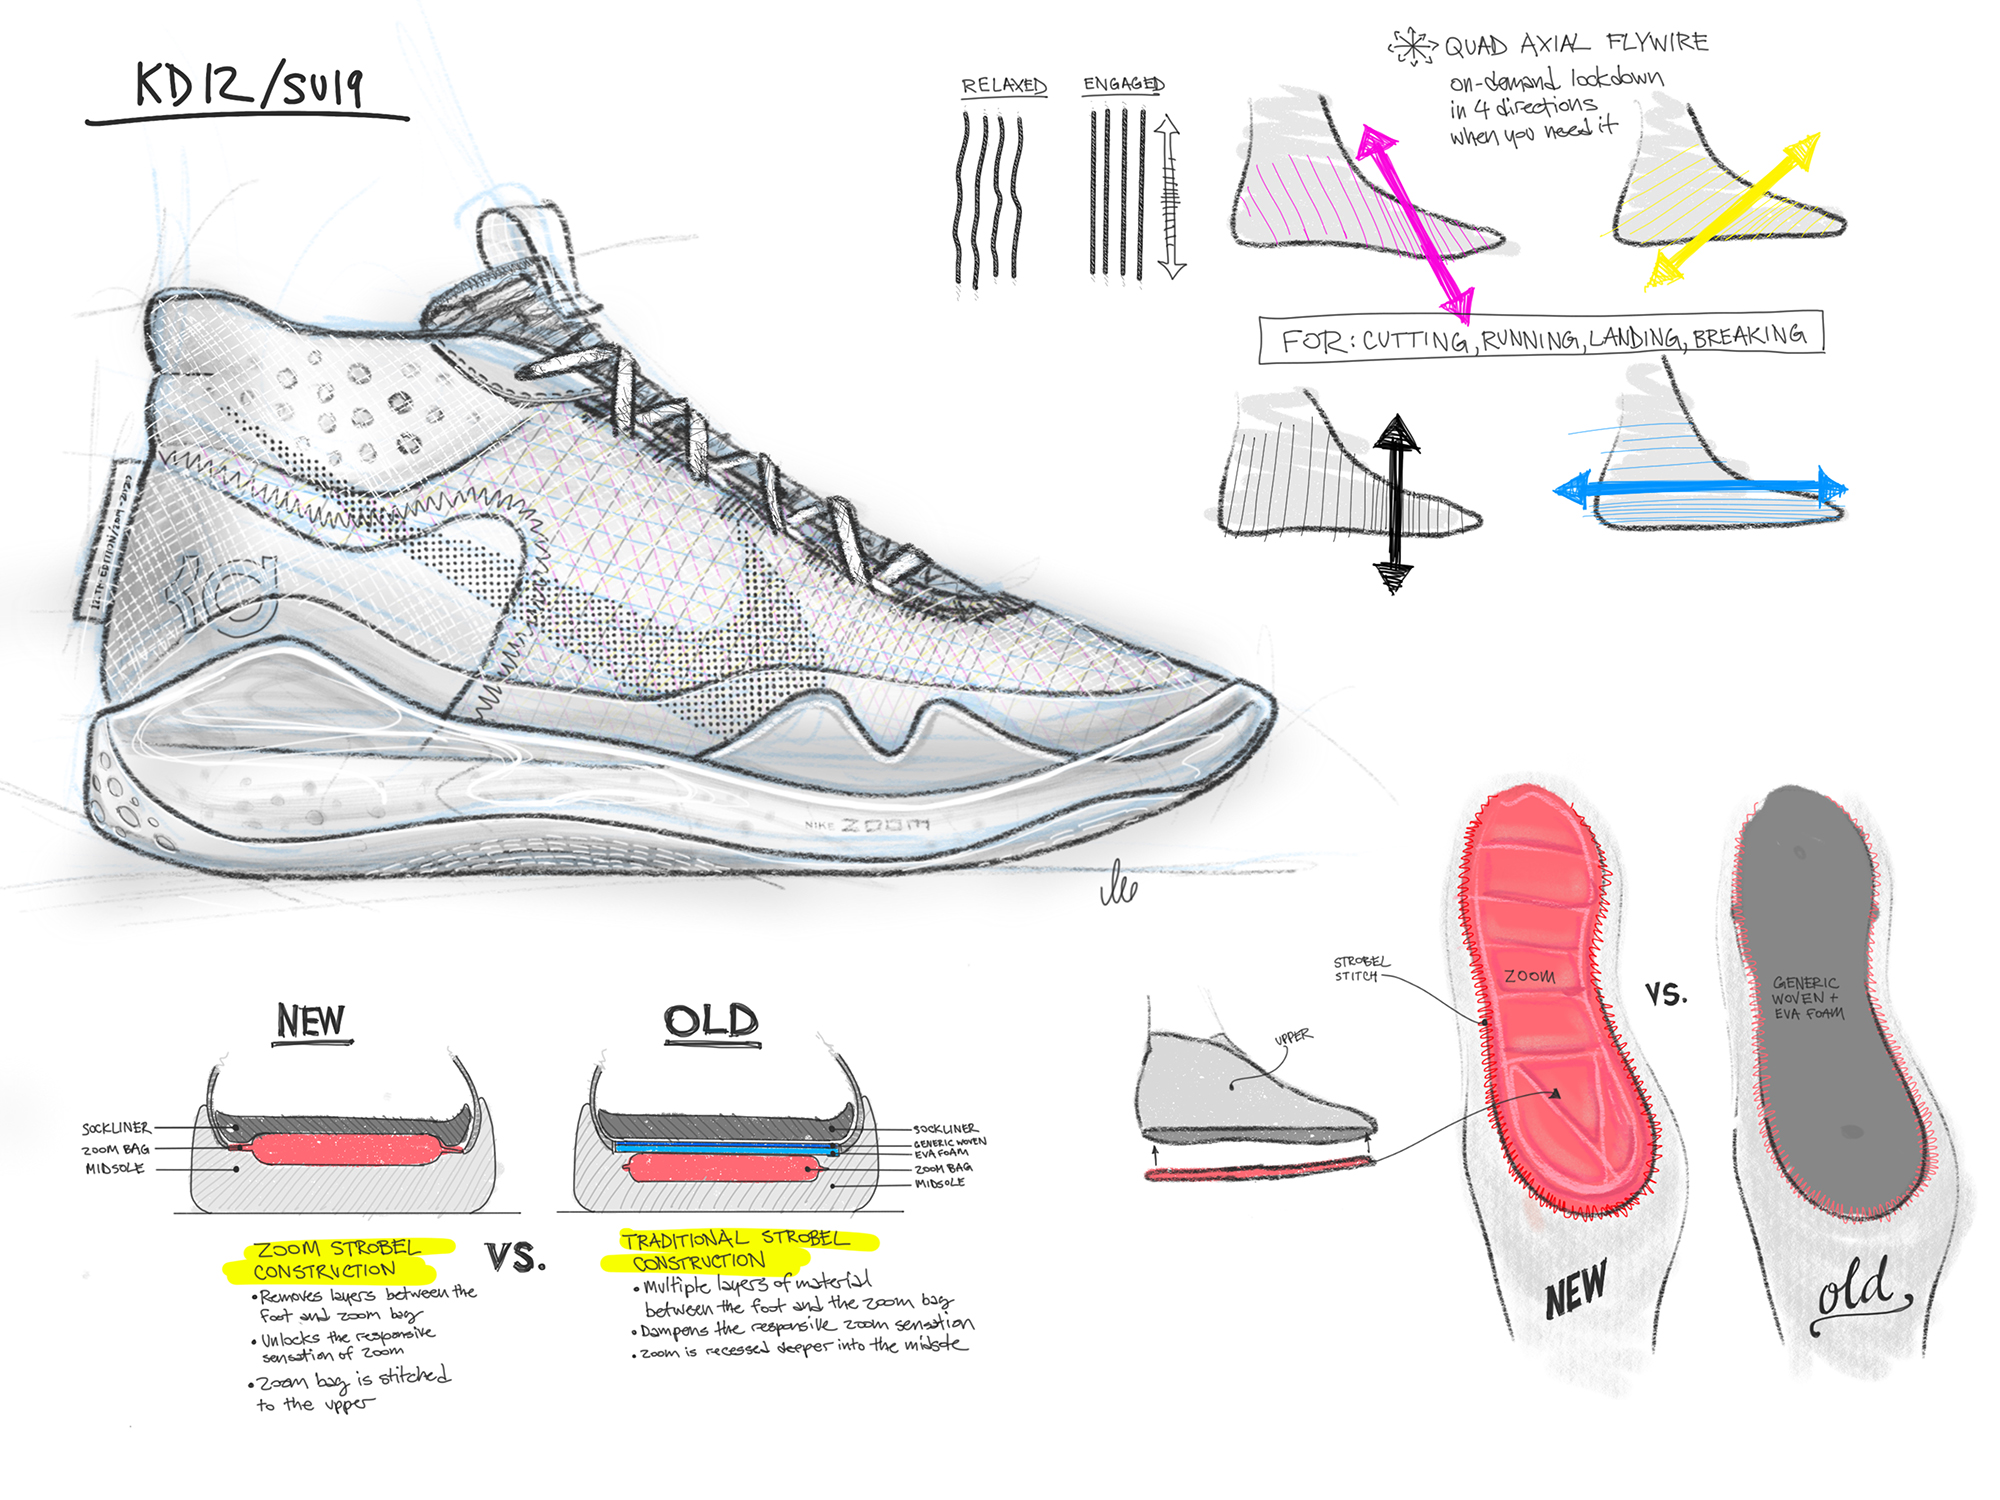 new concept 36268 c9473 Kevin Durant  Warriors star unveils Nike KD 12 sneaker (photos)   SI.com